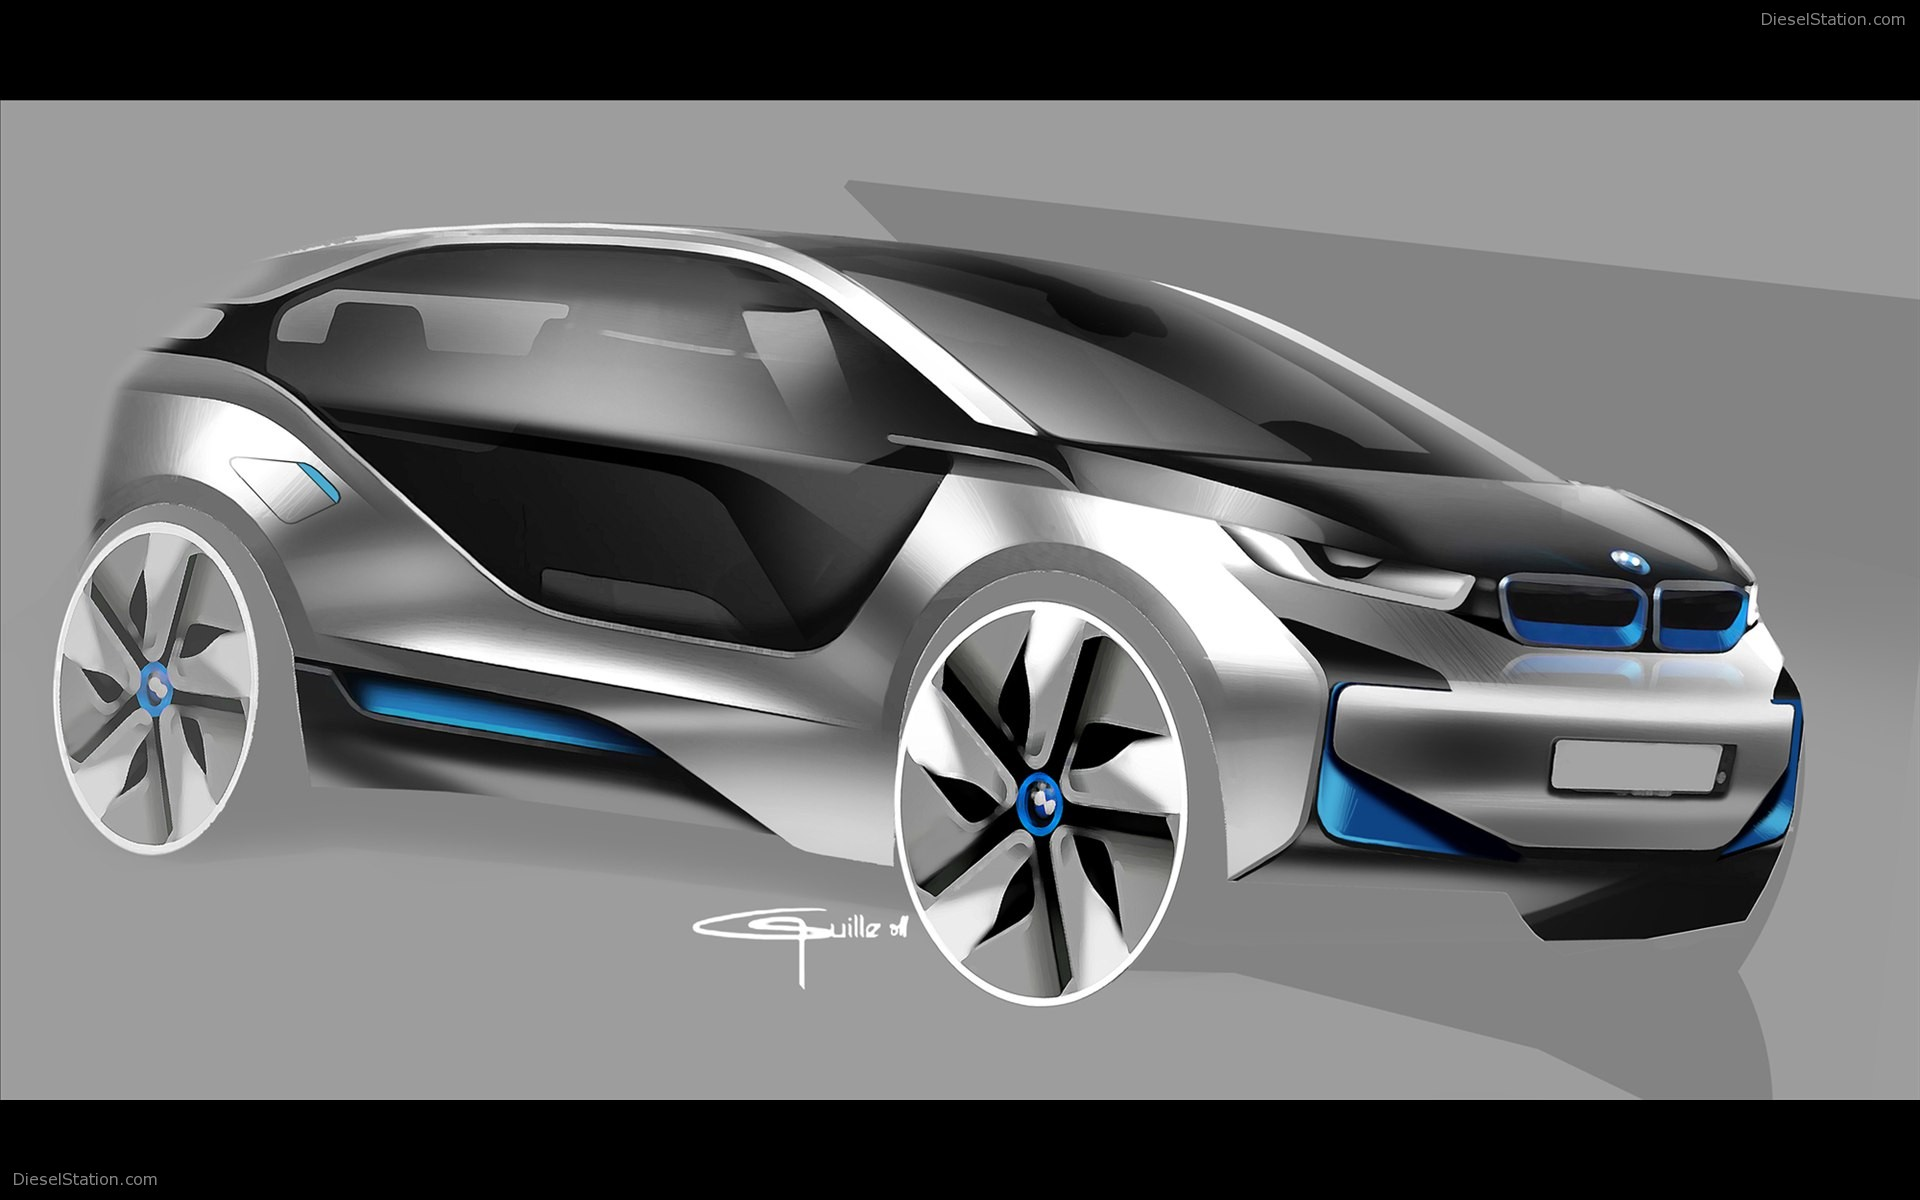 1920x1200 - BMW i3 Concept Wallpapers 21